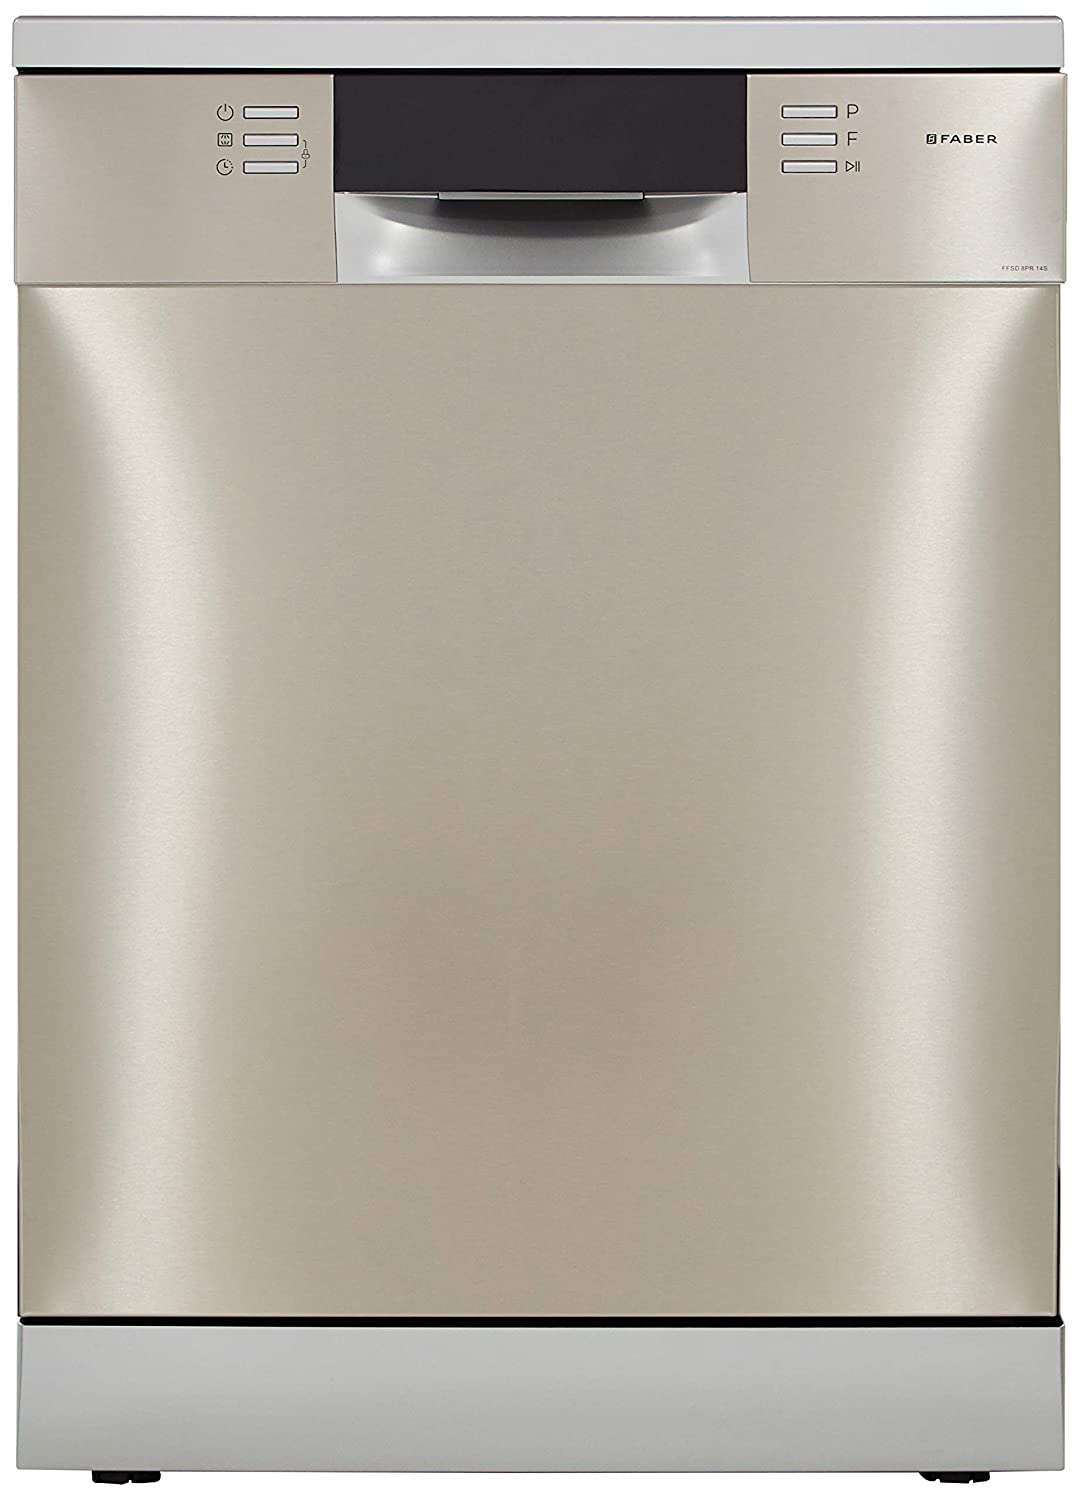 Faber 14 Place Settings Dishwasher (FFSD 8PR 14S, Silver, Inbuilt Heater)